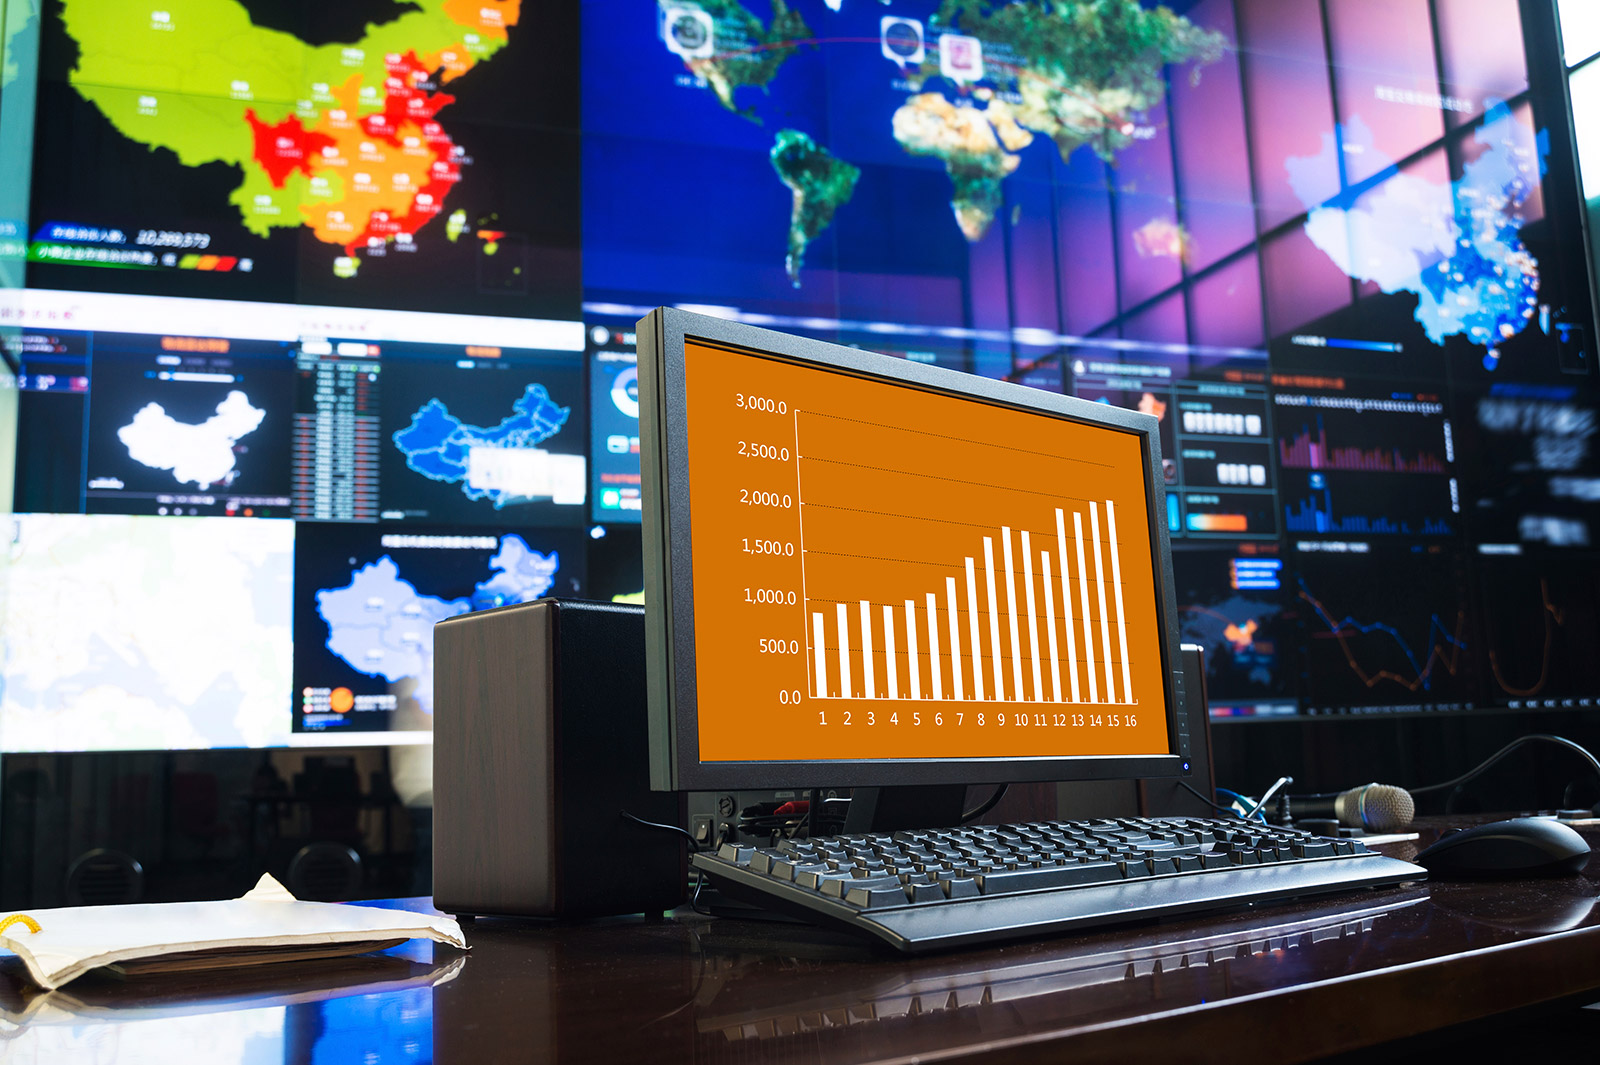 This is the picture of a computer displaying graphs